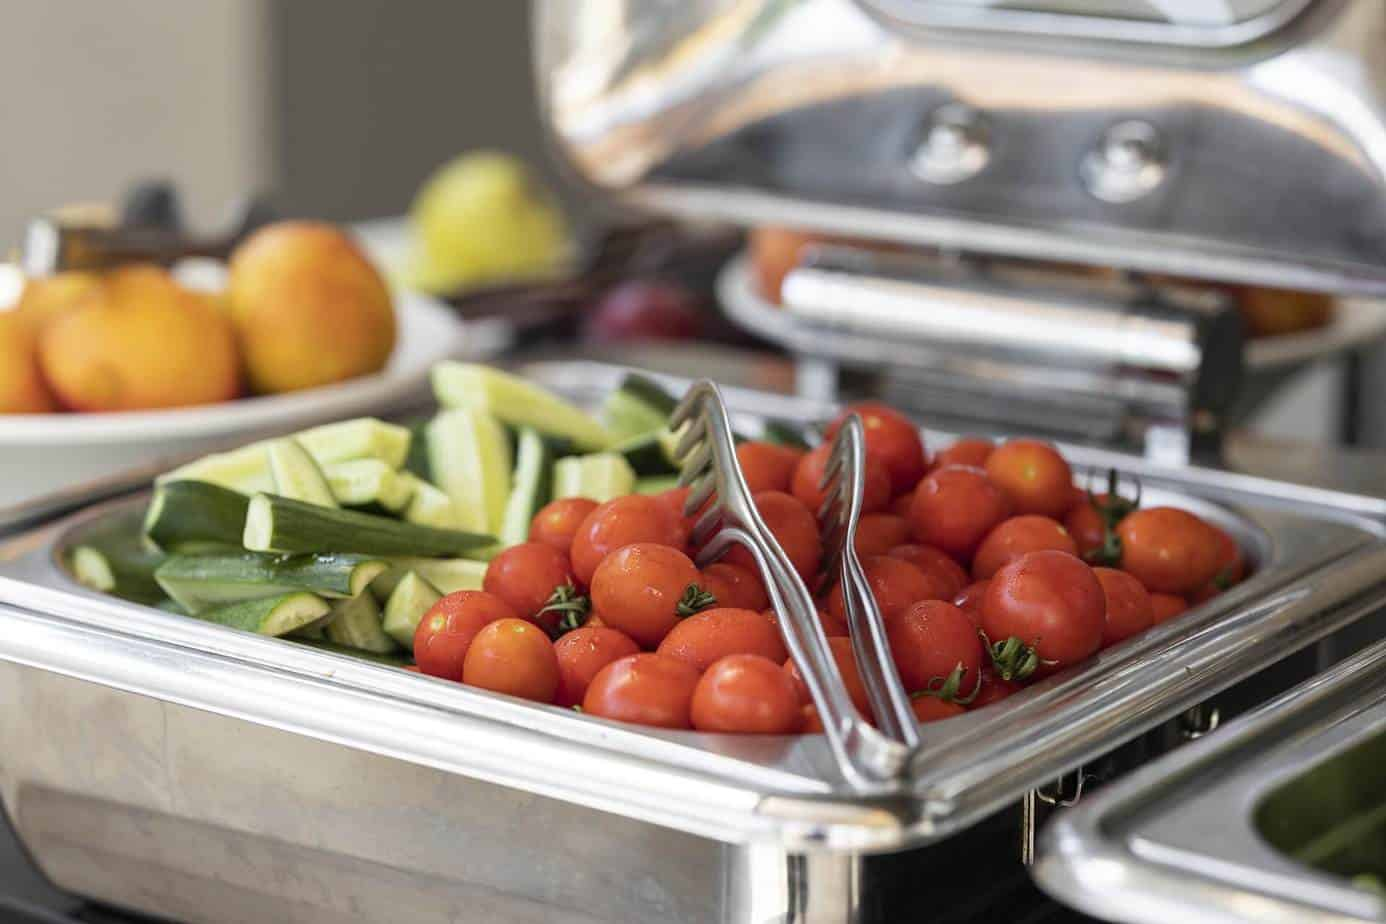 zucchini and cherry tomatoes in chafing dish